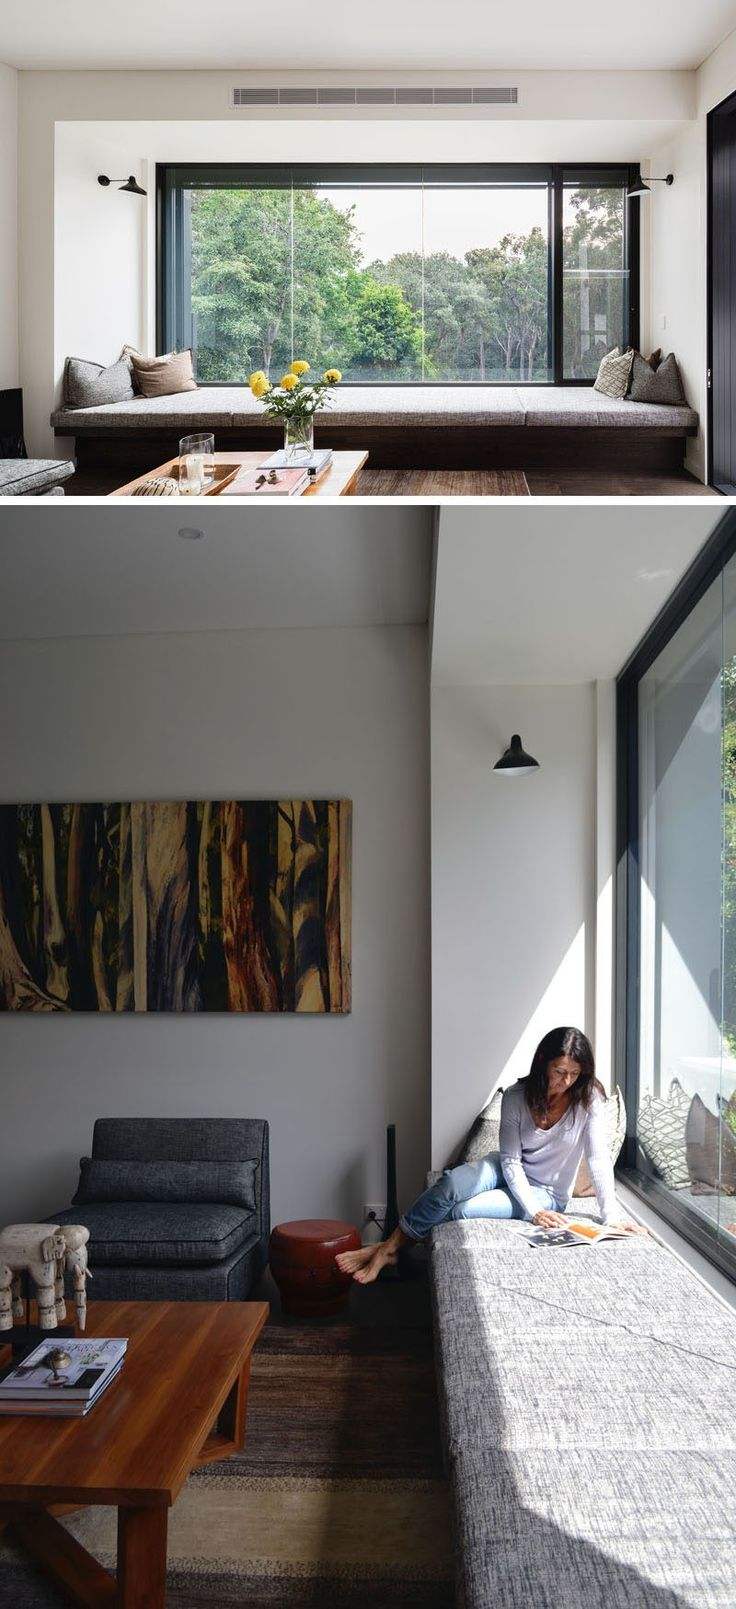 30 fuß vor hause design best  house images on pinterest  home ideas my house and windows